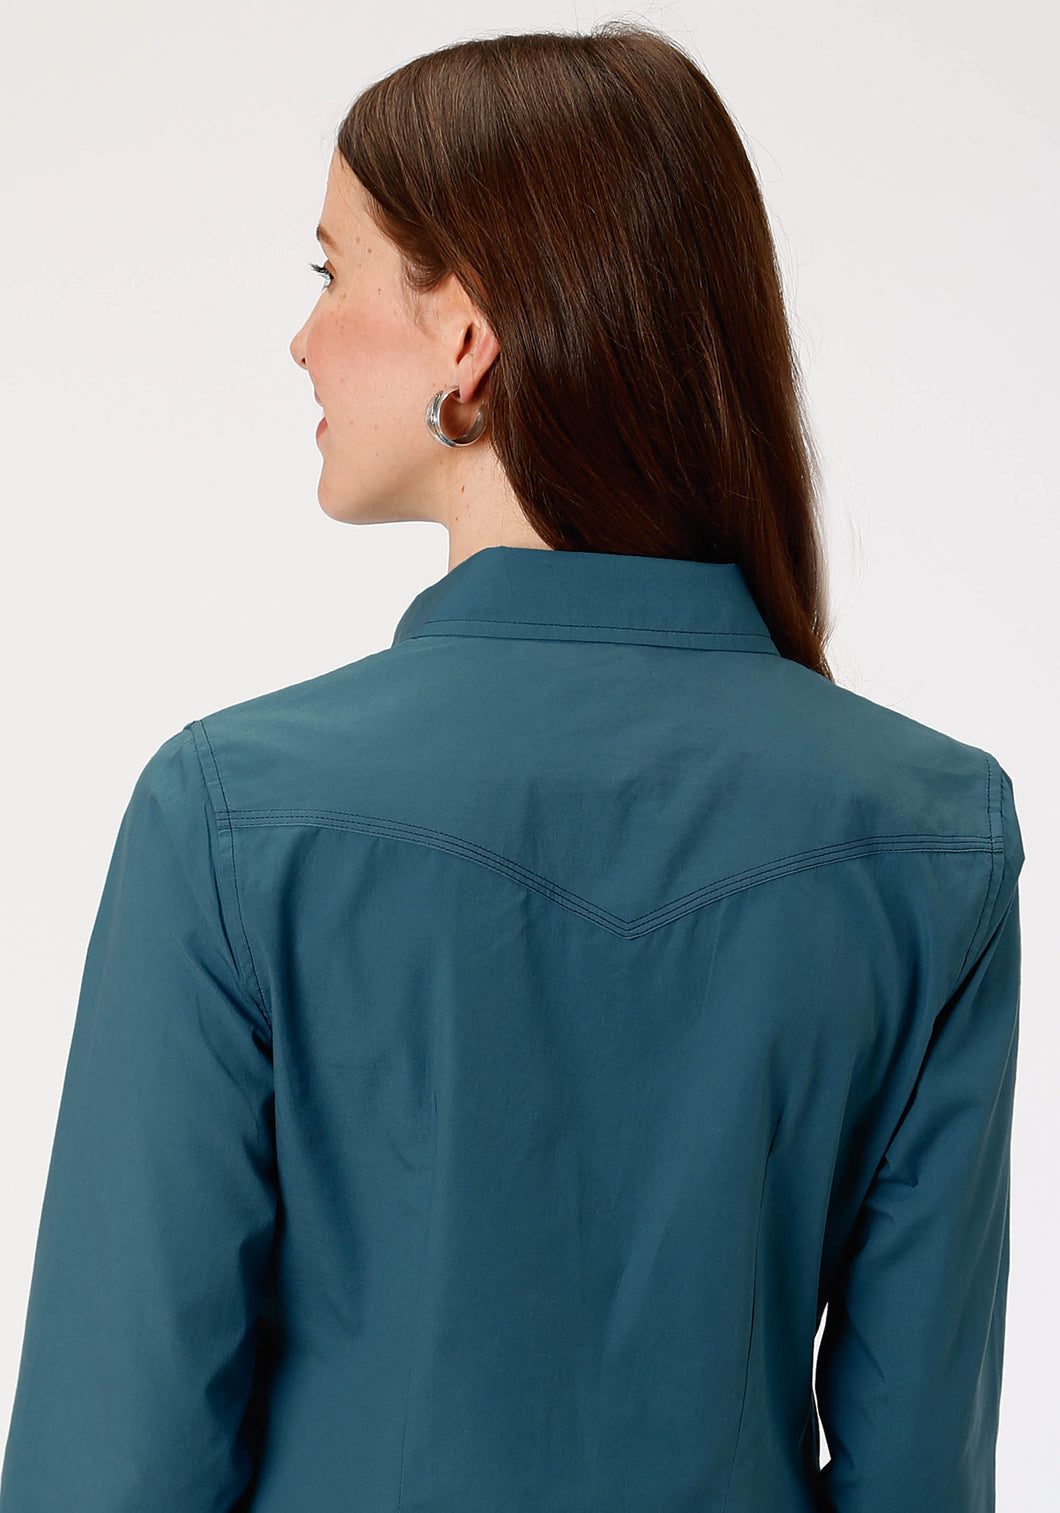 West Made Collection Westm Womens Long Sleeve 1418 Solid Poplin - Teal